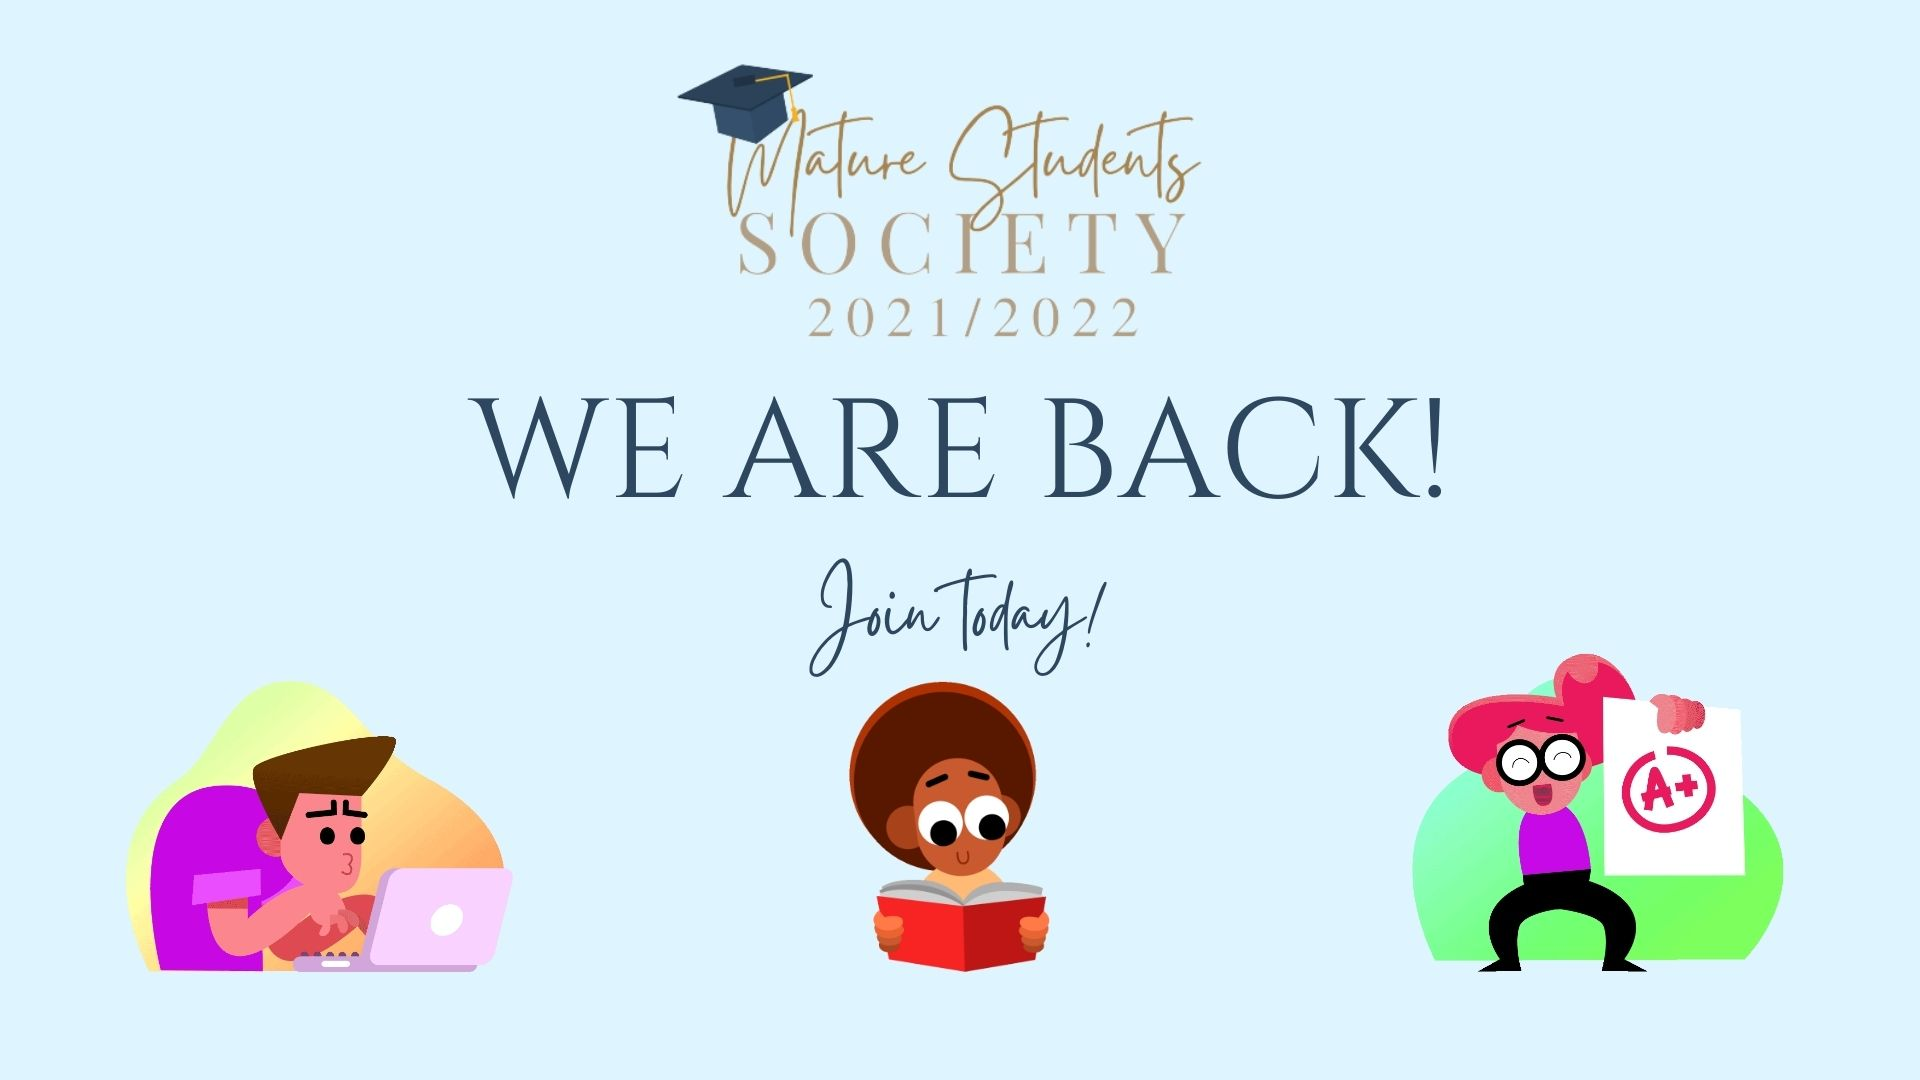 Mature Student Society is back!